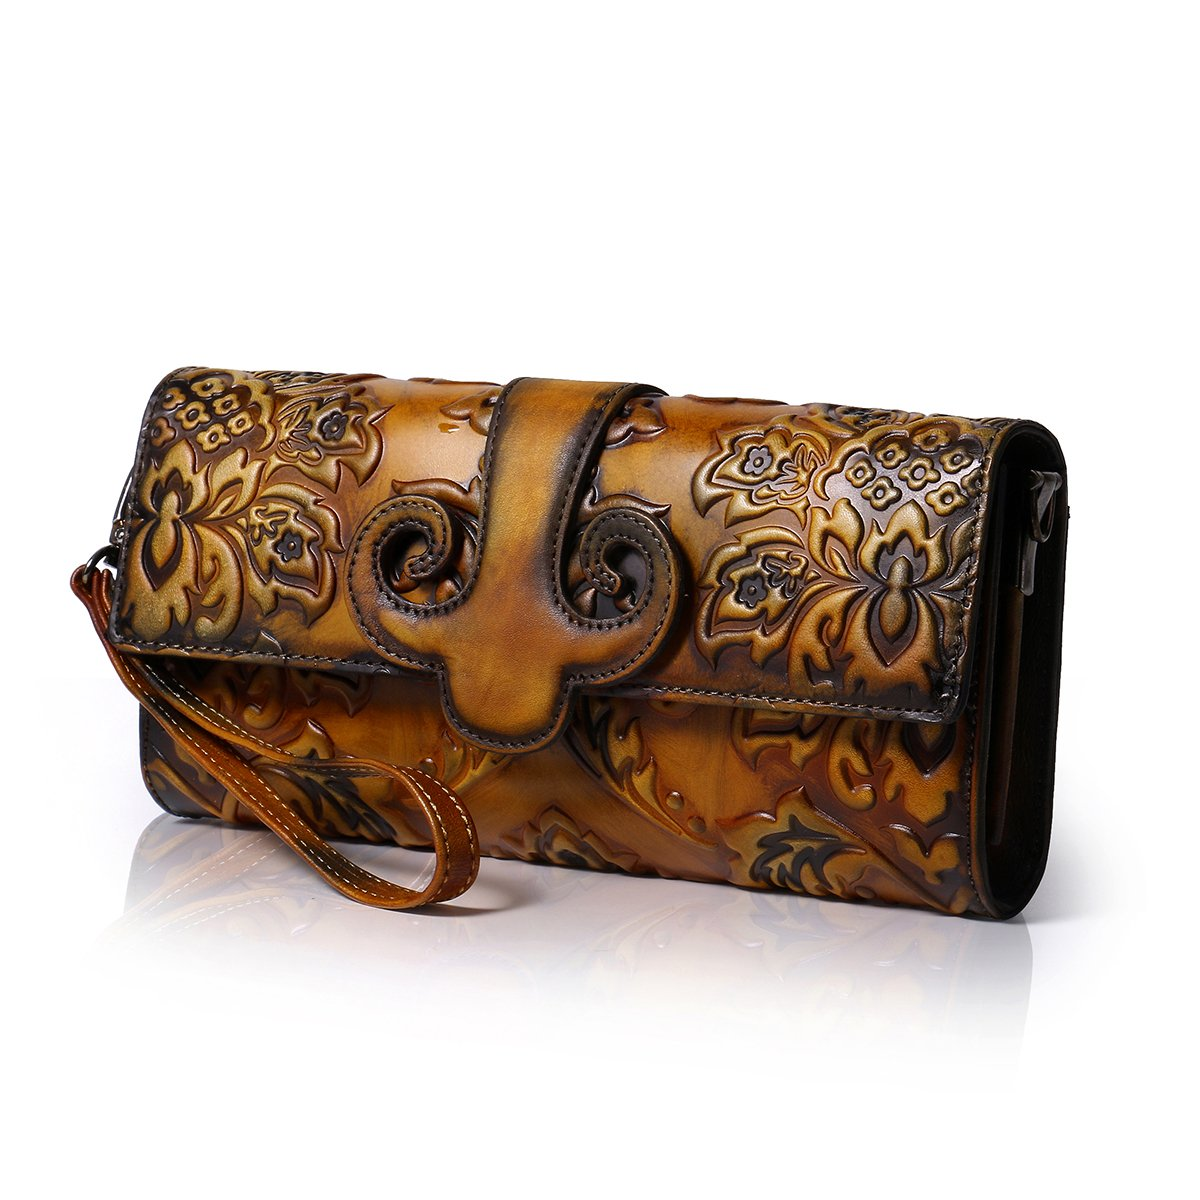 APHISON Designer Unique Chinese style Embossed Floral Women's Leather Zipper Shoulder Bags Hand Bags Wallets (BROWN)